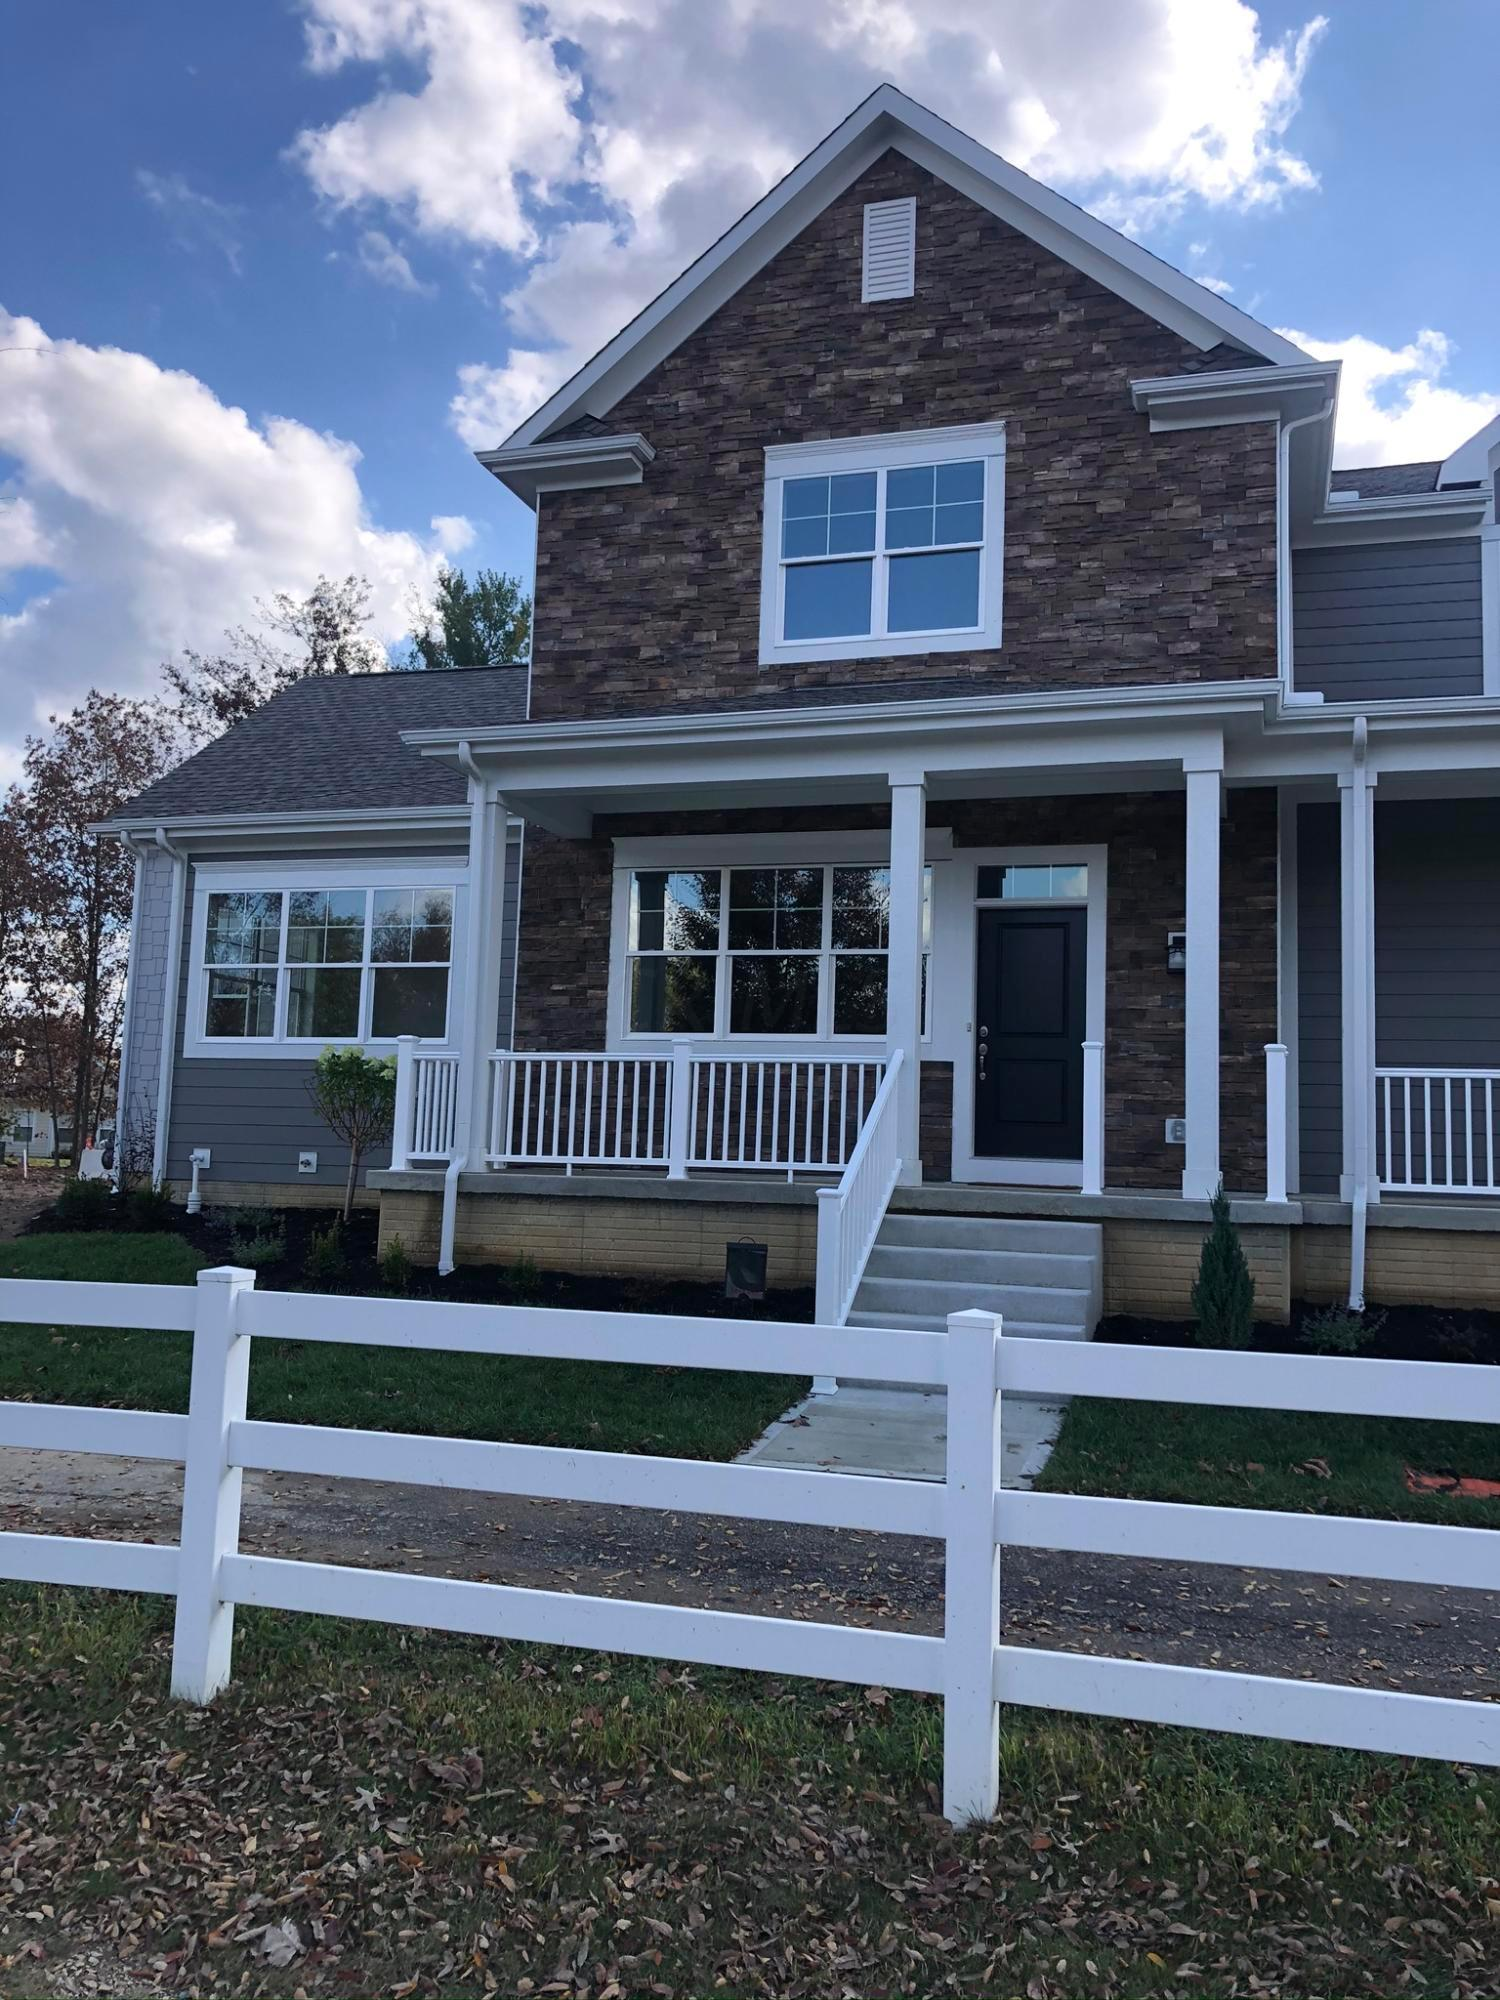 10335 Sawmill Road, Powell, Ohio 43065, 3 Bedrooms Bedrooms, ,3 BathroomsBathrooms,Residential,For Sale,Sawmill,221000428